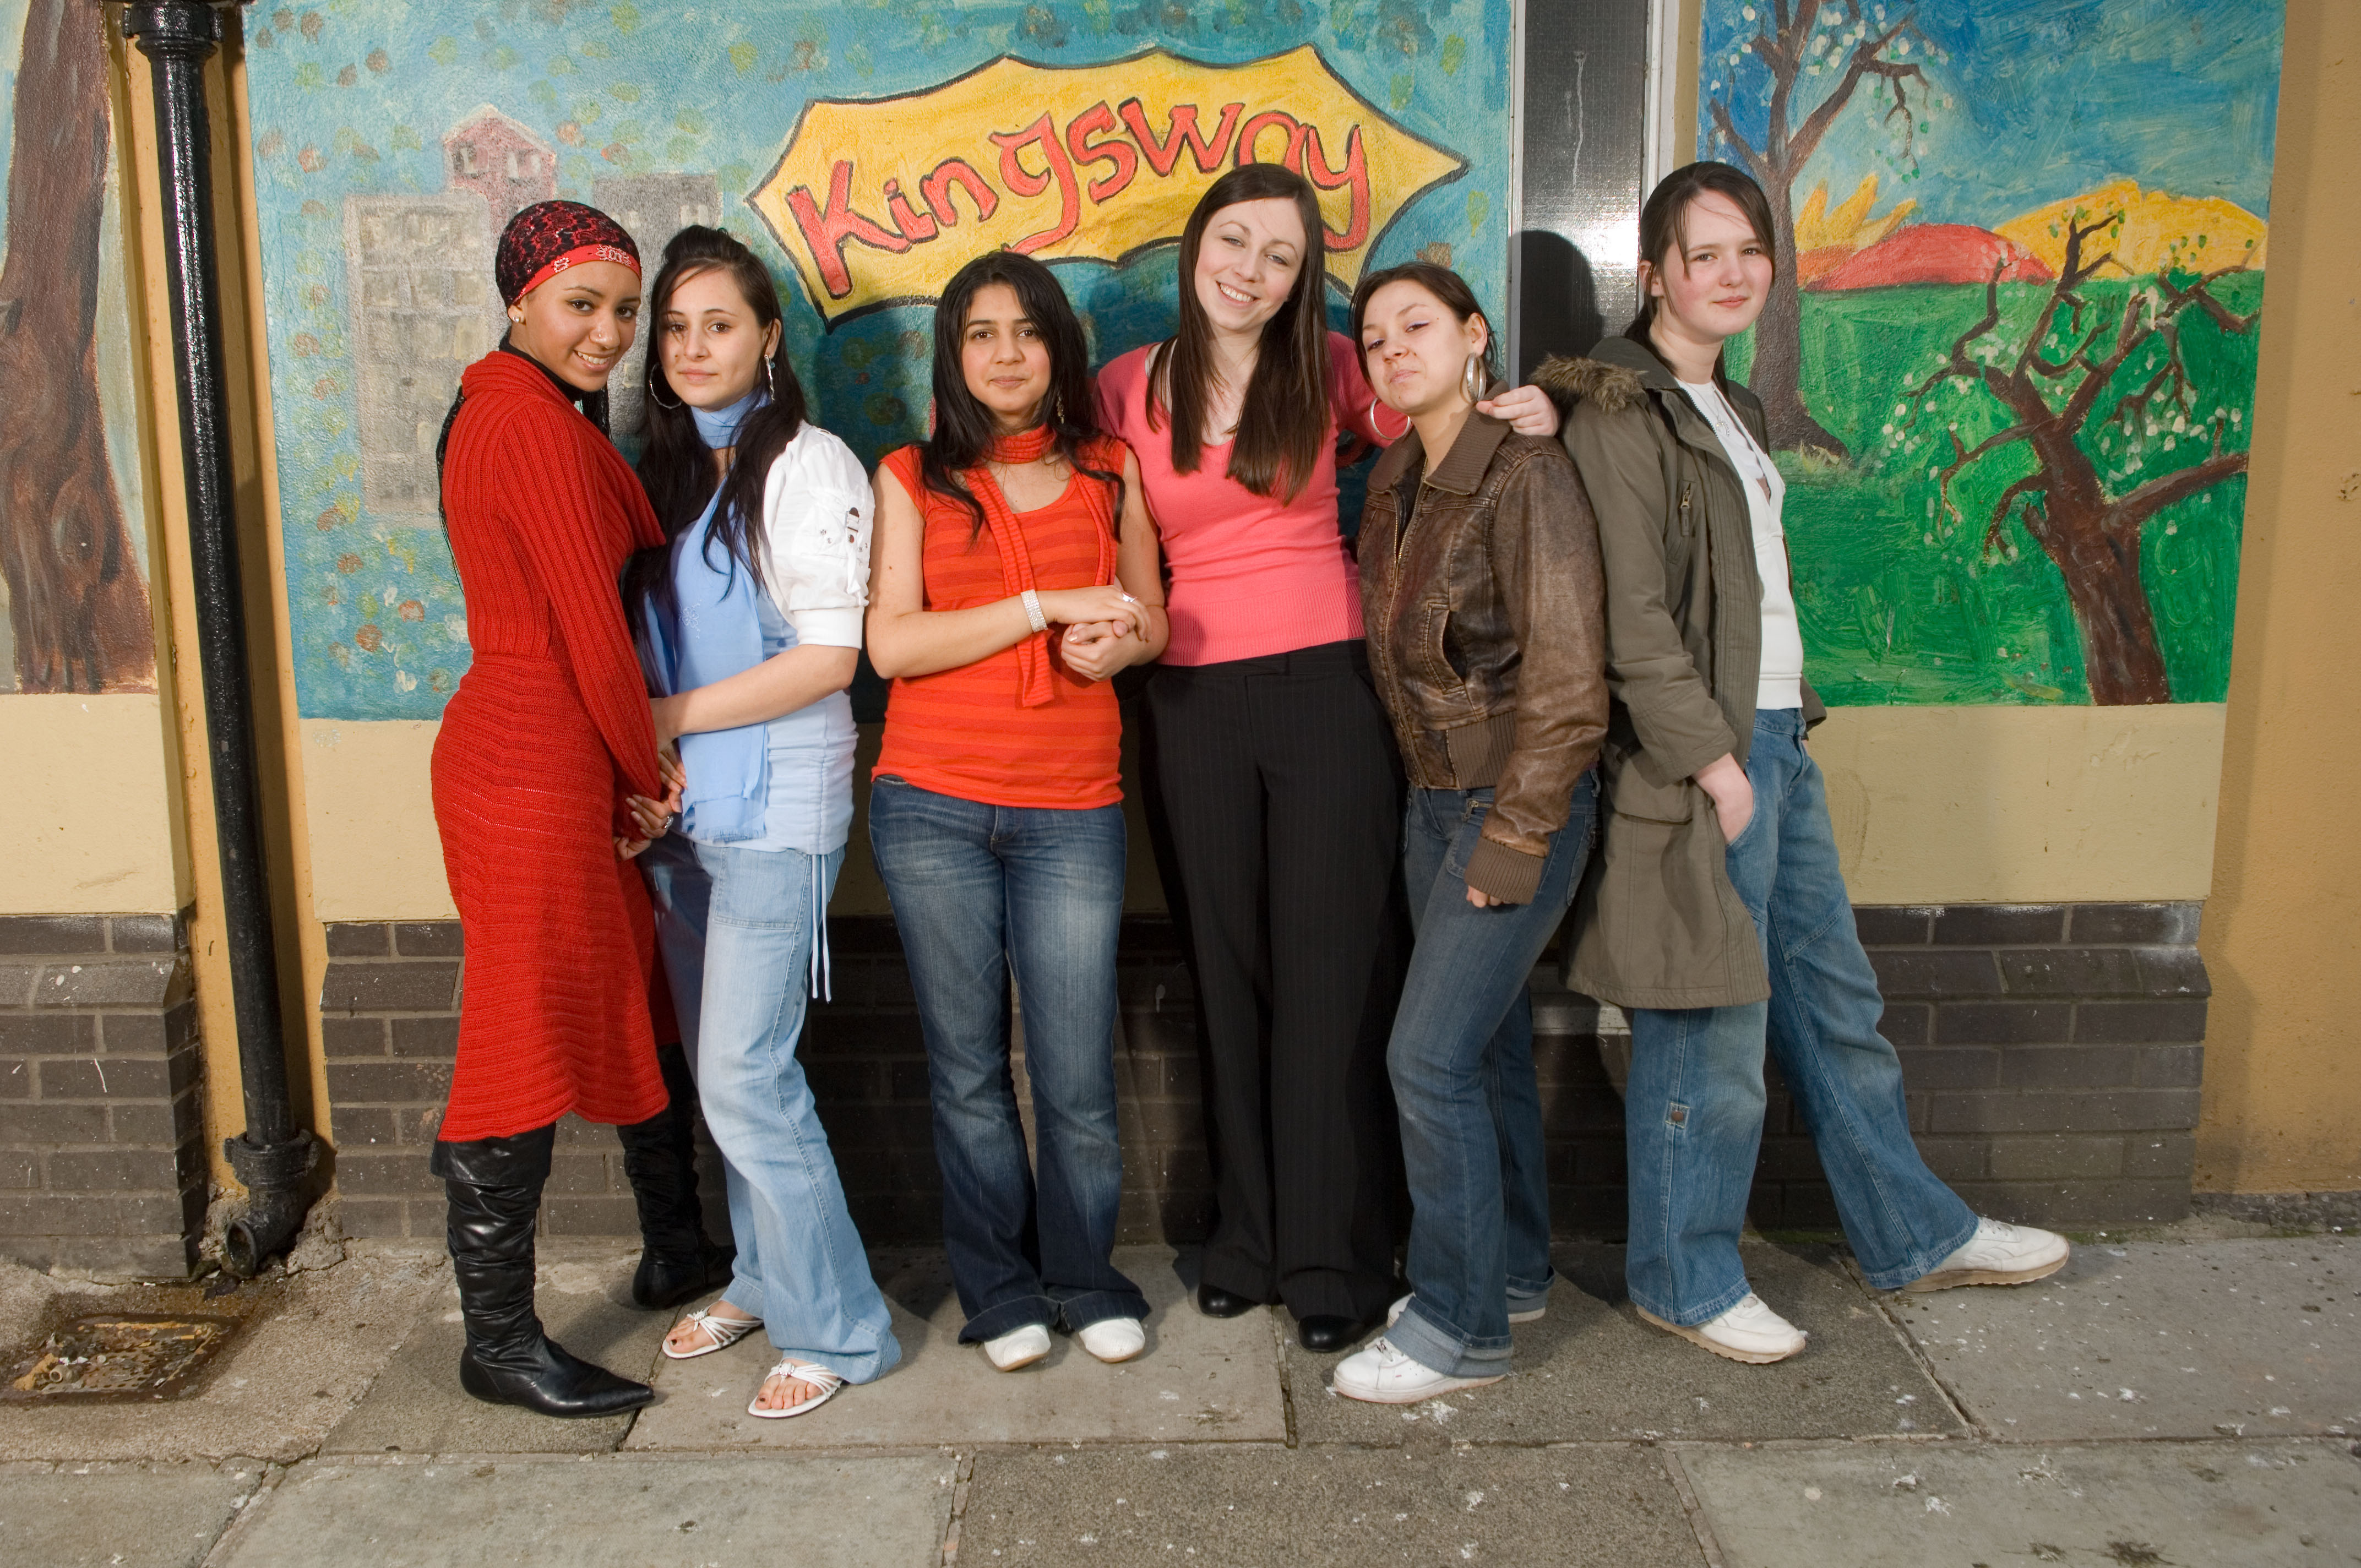 The Glasgow Girls. These girls campaign for the rights of asylum seekers in Glasgow.  Roza Salih (dark hair/red top) , Emma Clifford (Pink top) , Ewelina Siwak ( leather jacket) , Jennifer McCarron ( green parka) , Agnesa Murselaj ( blue scarf ) , Amal Azzudin (red dress). (Wattie Cheung).